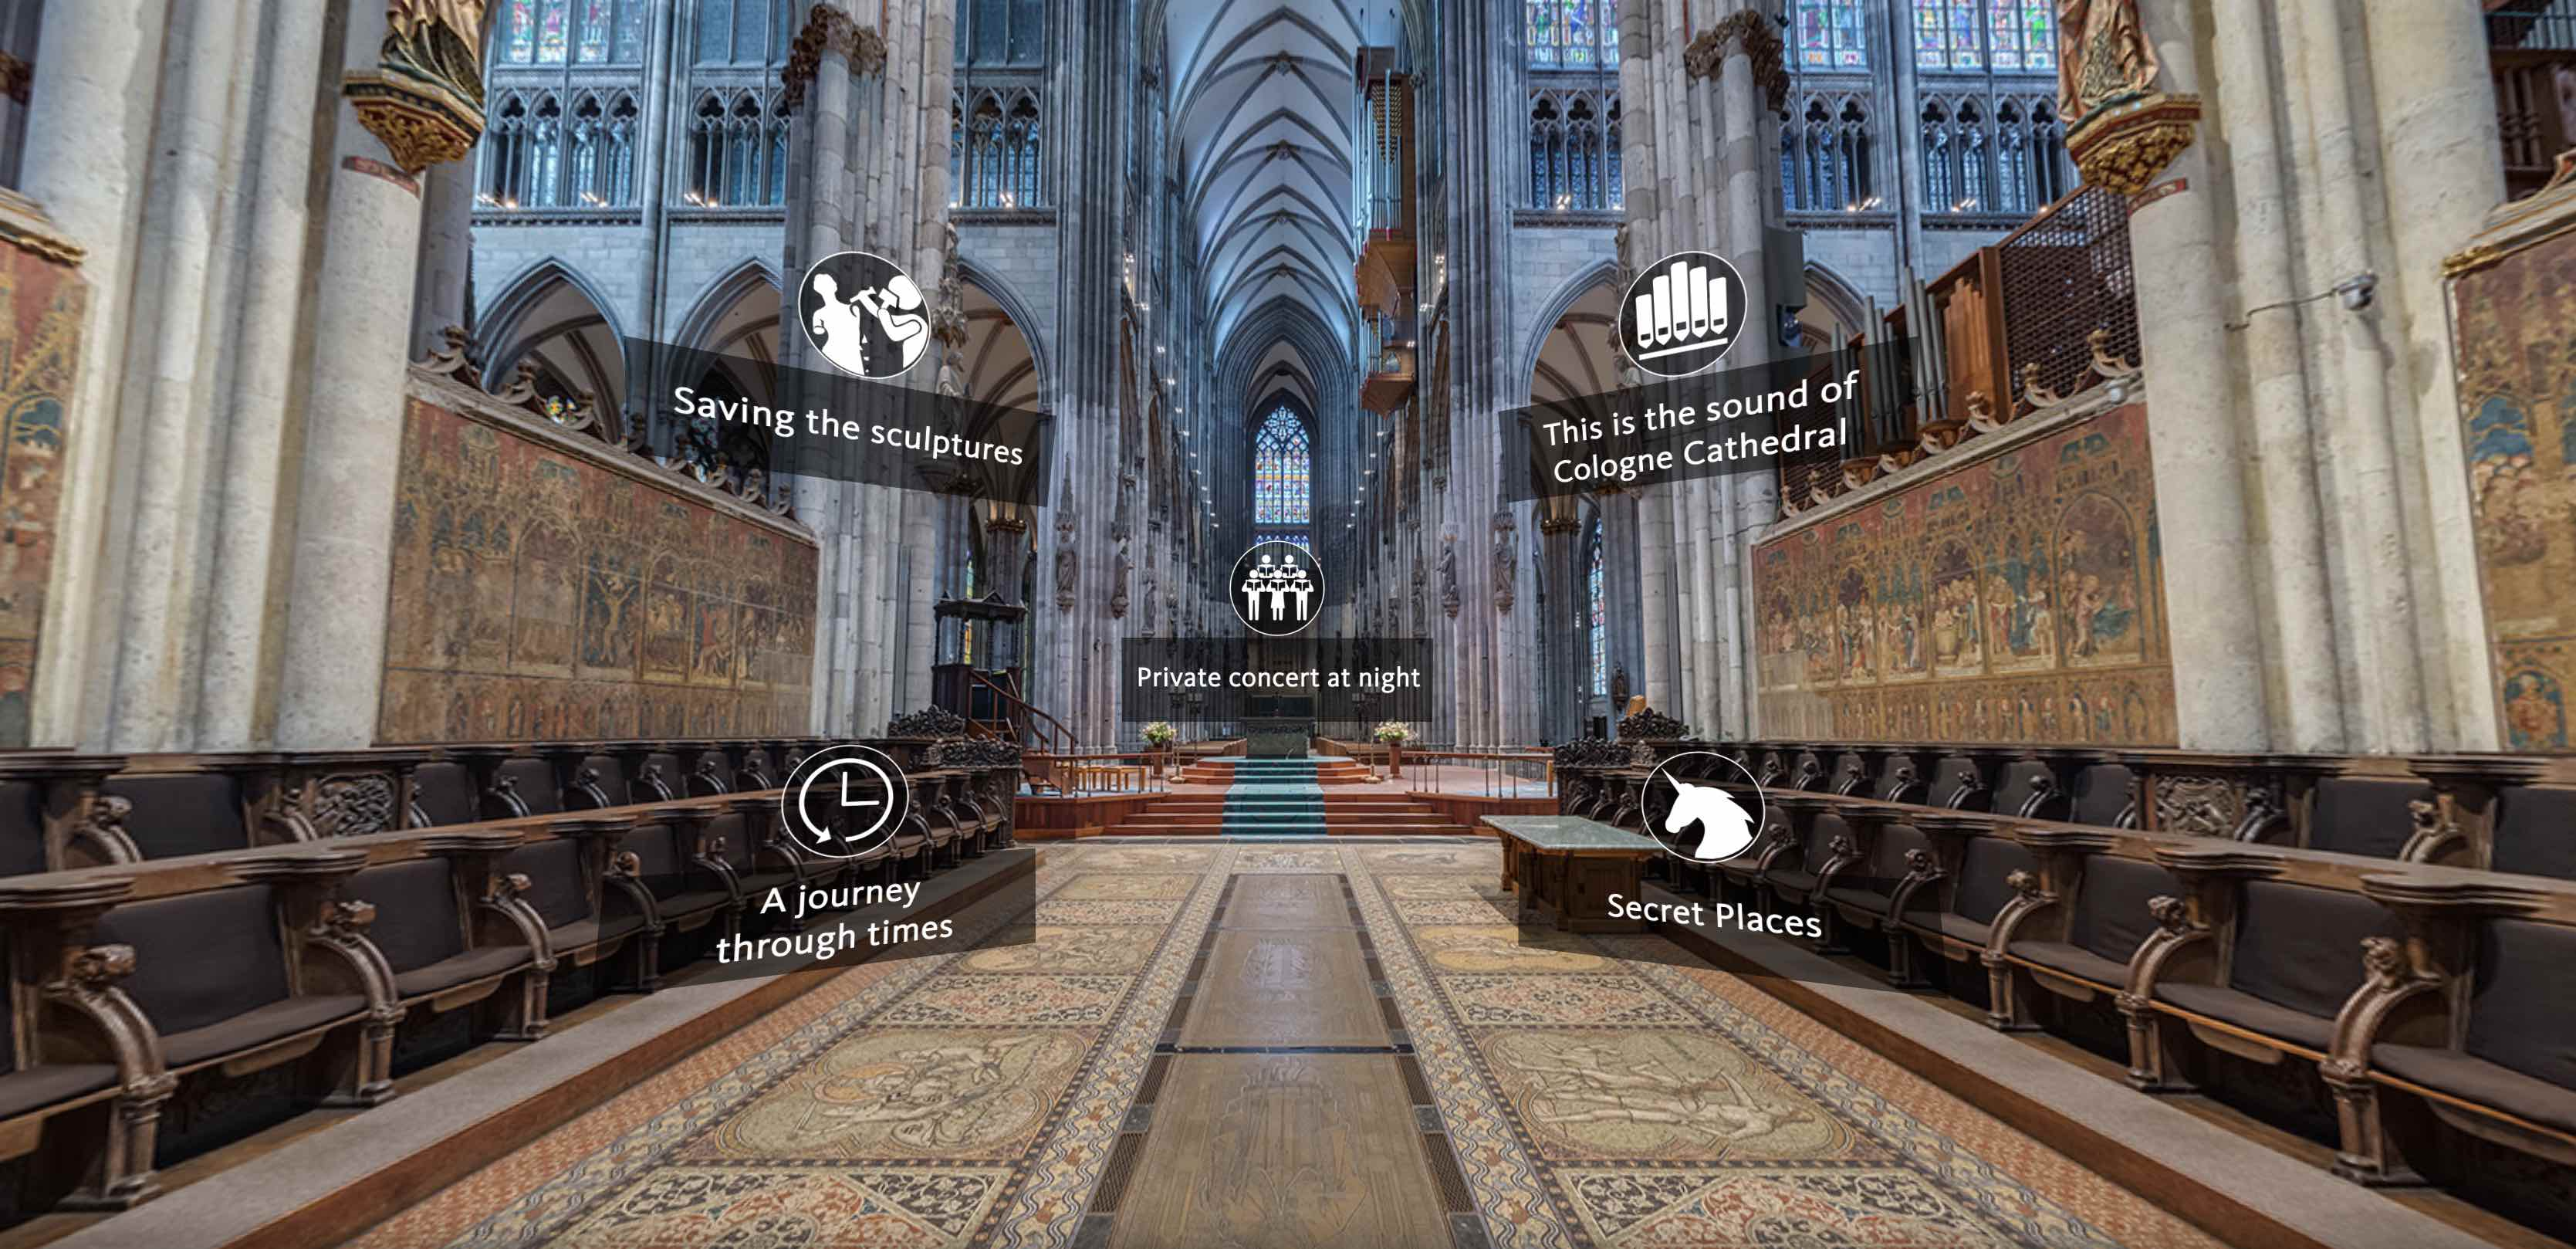 WDR Cologne Cathedral In 360 1 1024x496